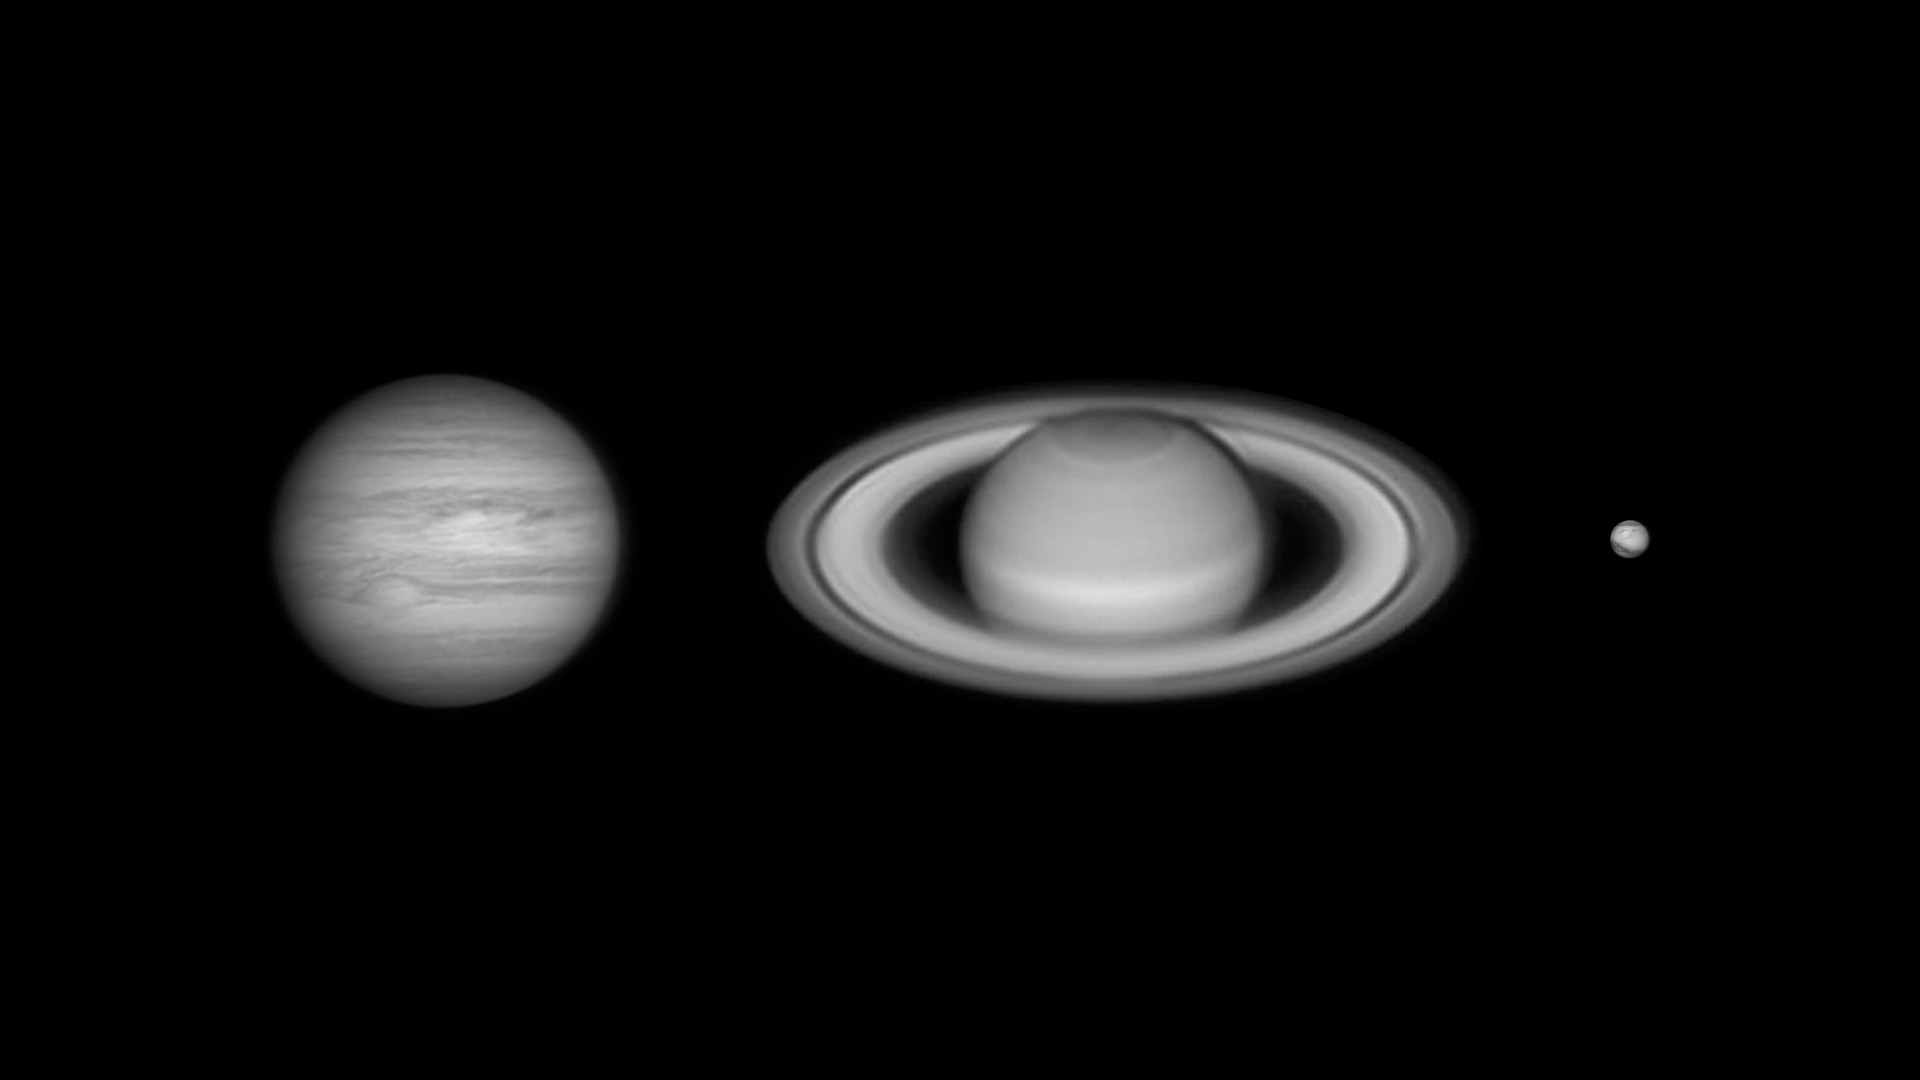 Black and white image of three planets.